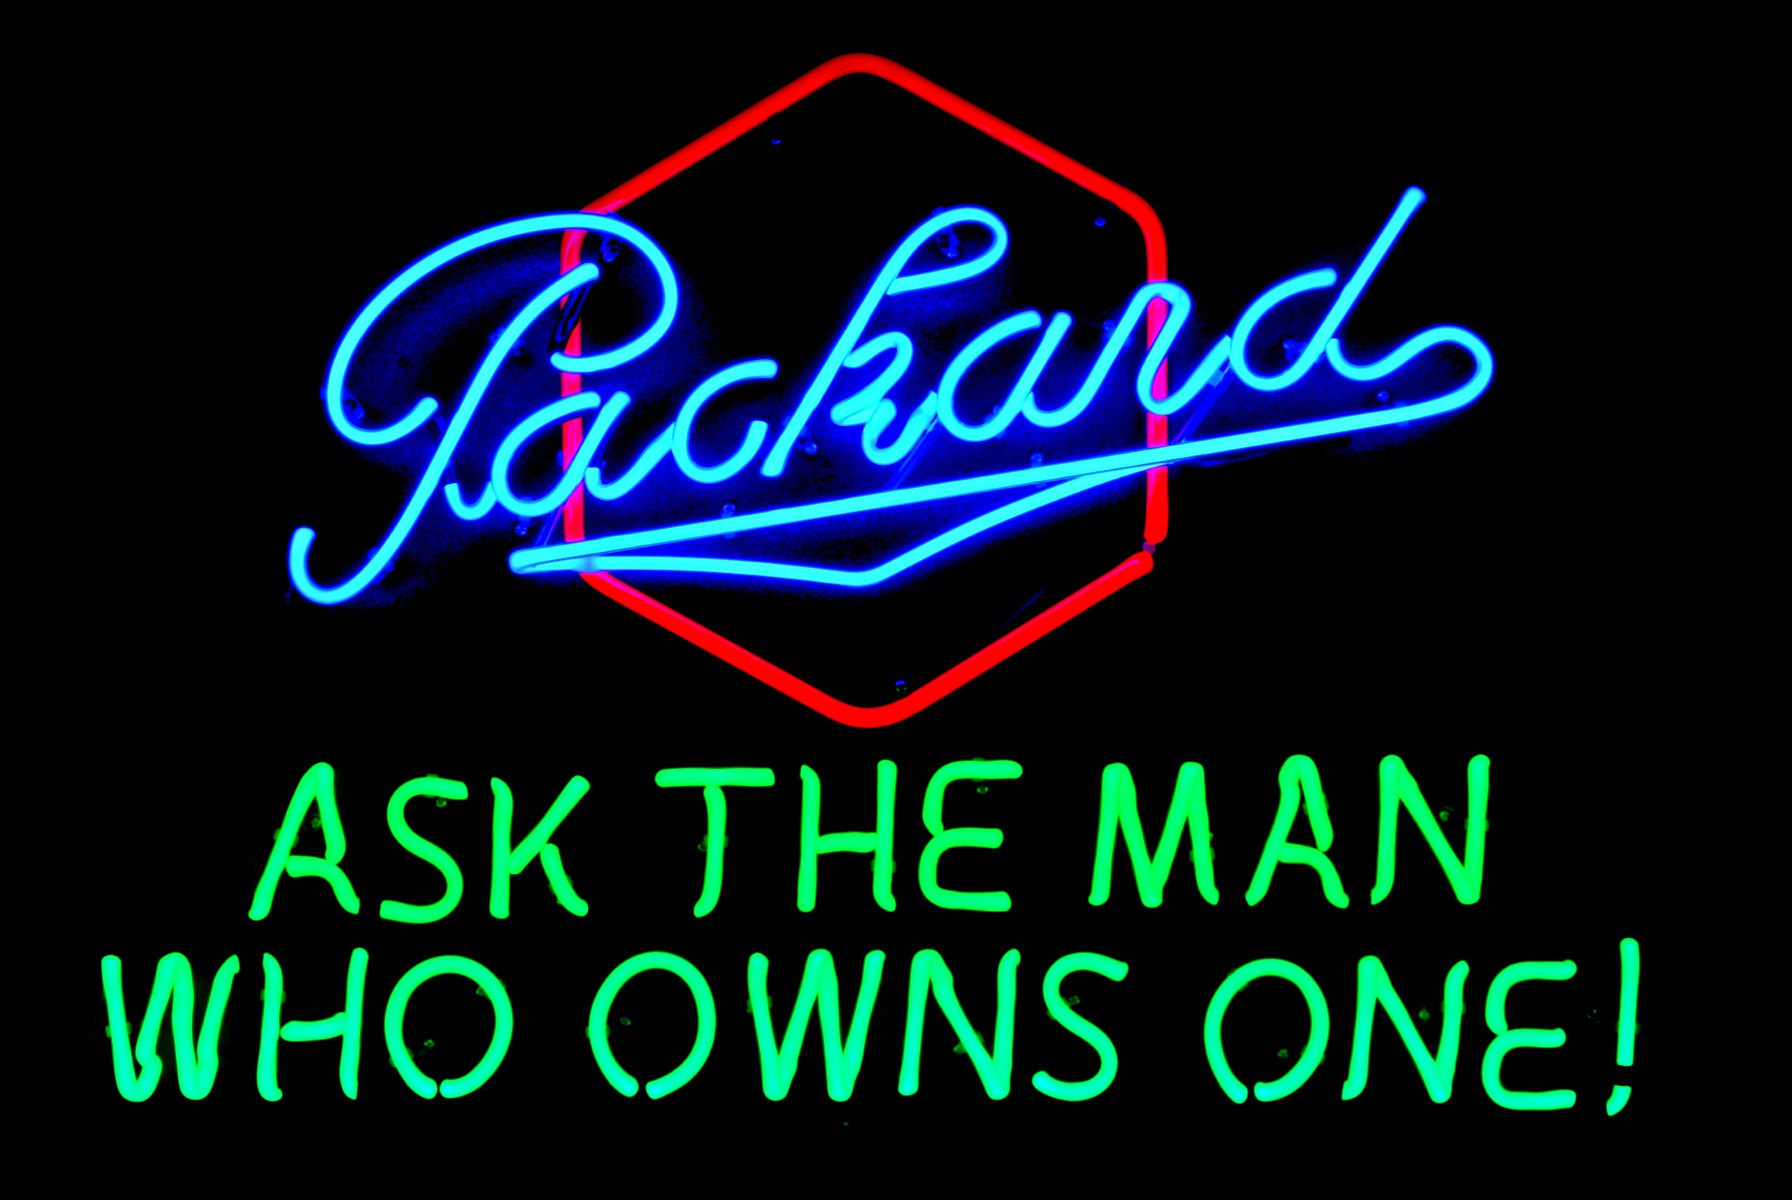 Packard Ask The Man Who Owns One! Neon Sign by John Barton - former Packard New Car Dealer - BartonNeonMagic.com